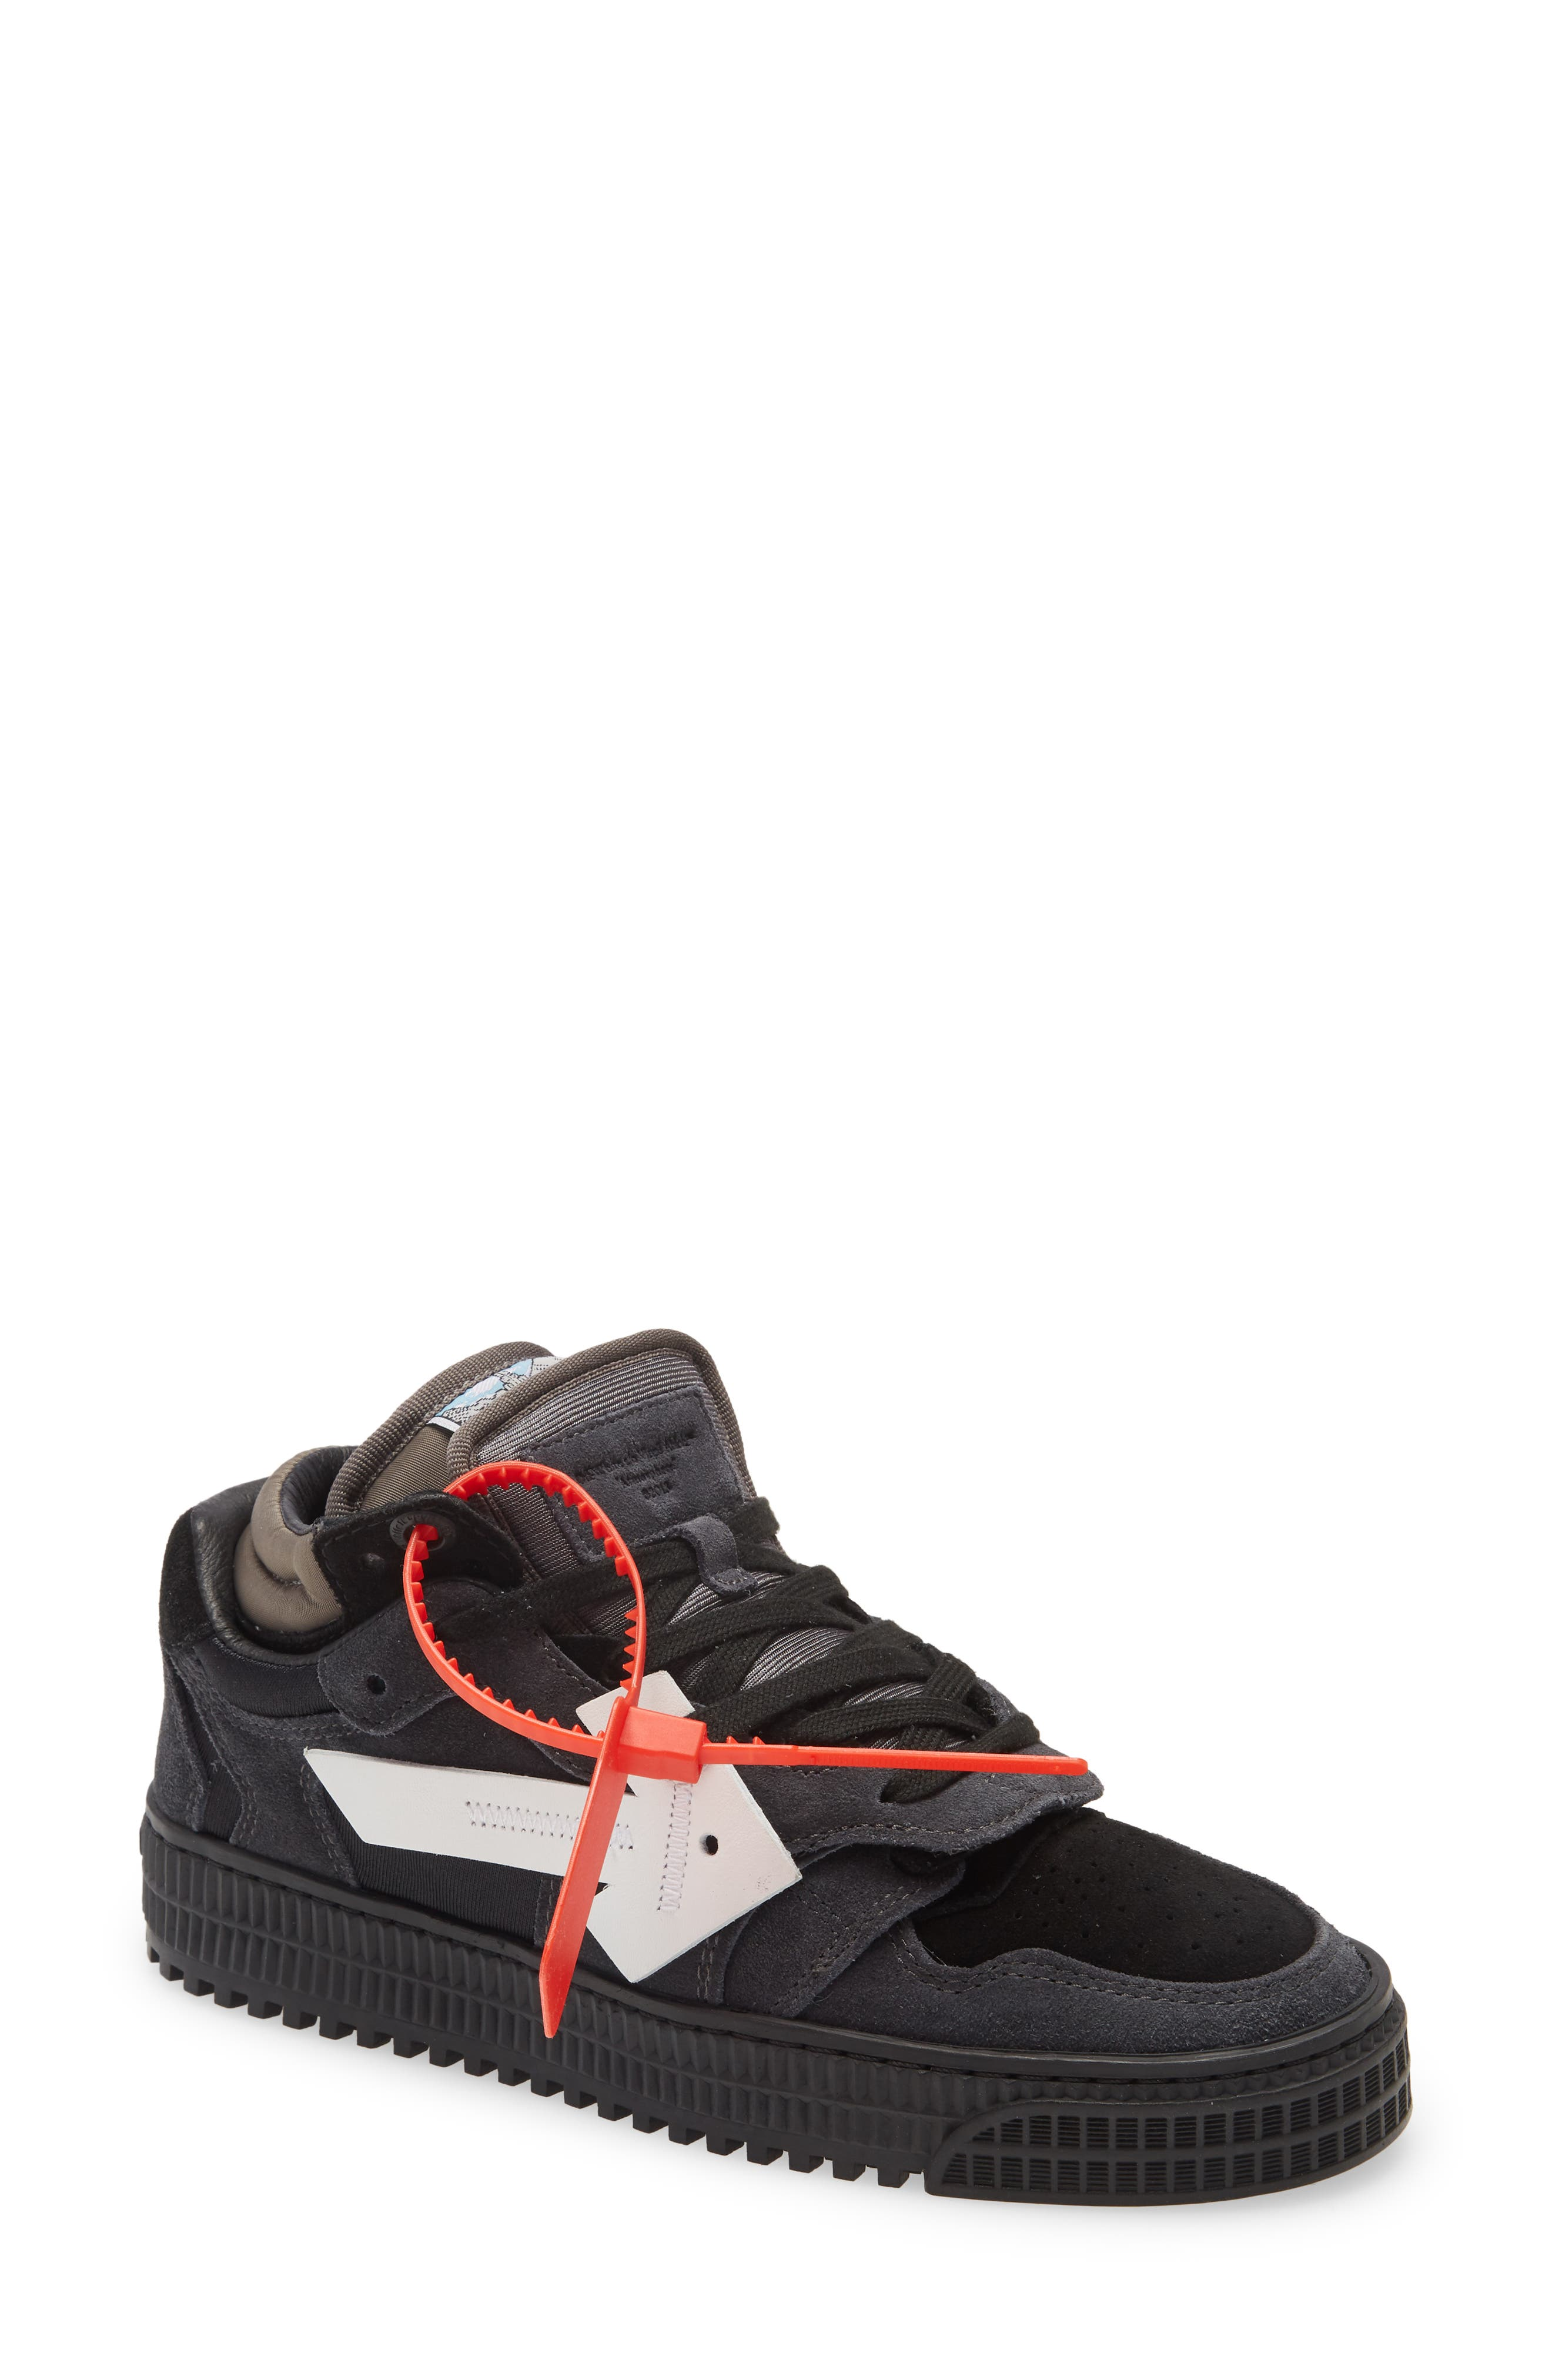 off white shoes sale